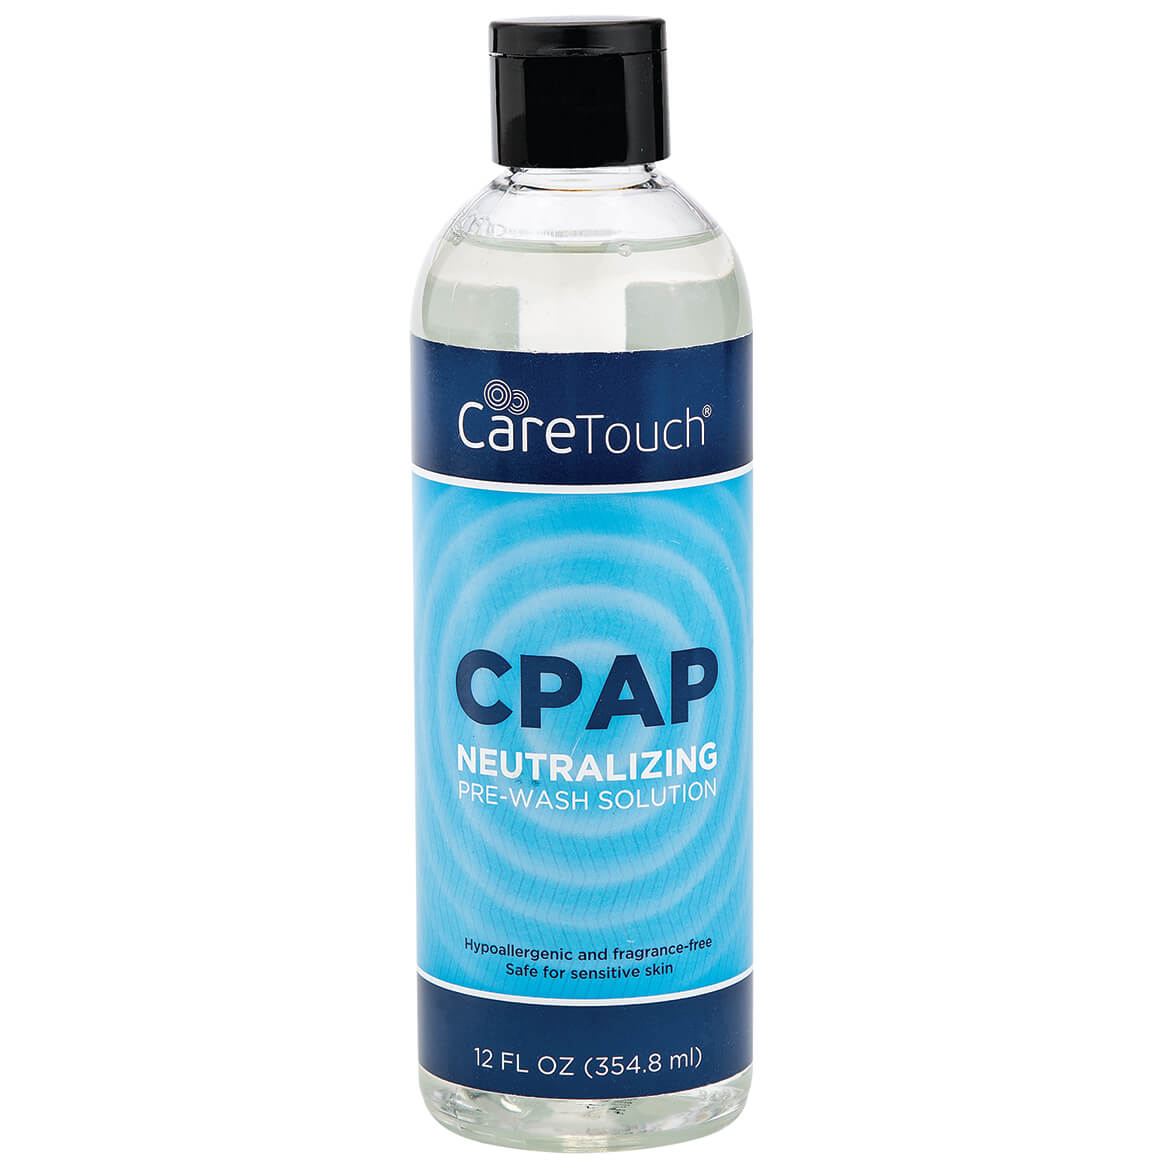 CPAP Neutralizing Pre-Wash Solution-371598